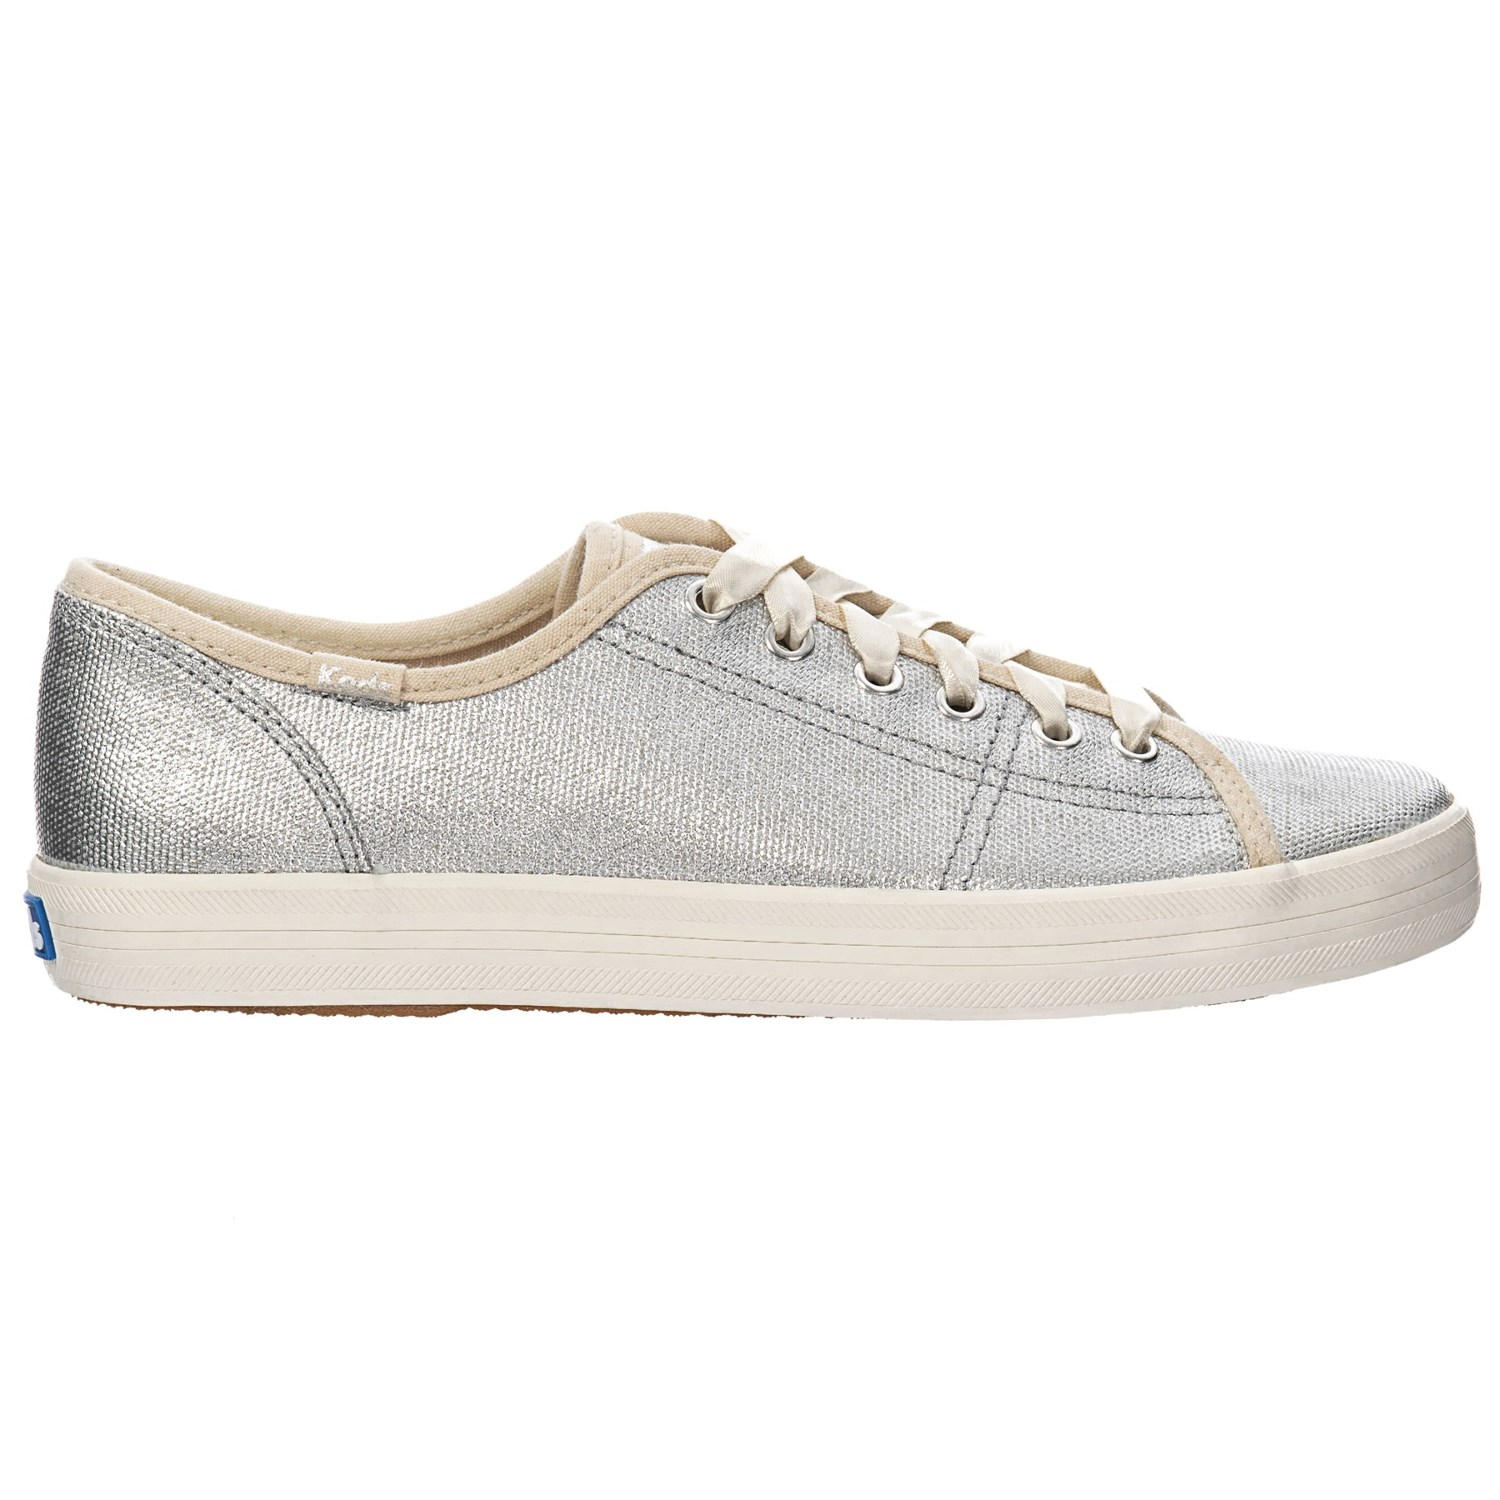 55d9817ad73d Keds Kickstart Matte Brushed Metallic Sneakers (For Women) - Save 46%